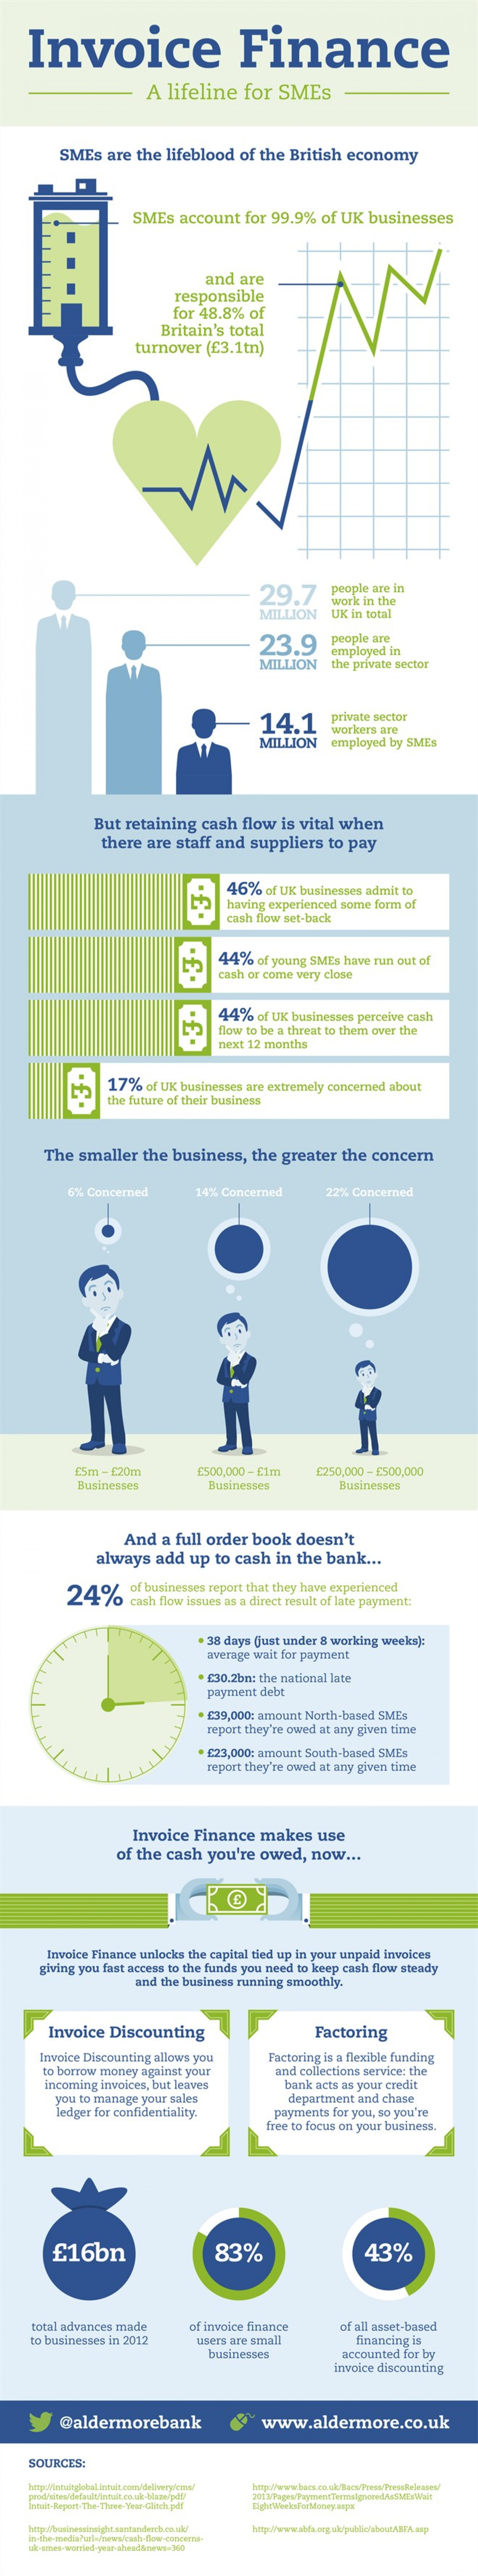 Invoice Finance: A Lifeline for SMEs Infographic